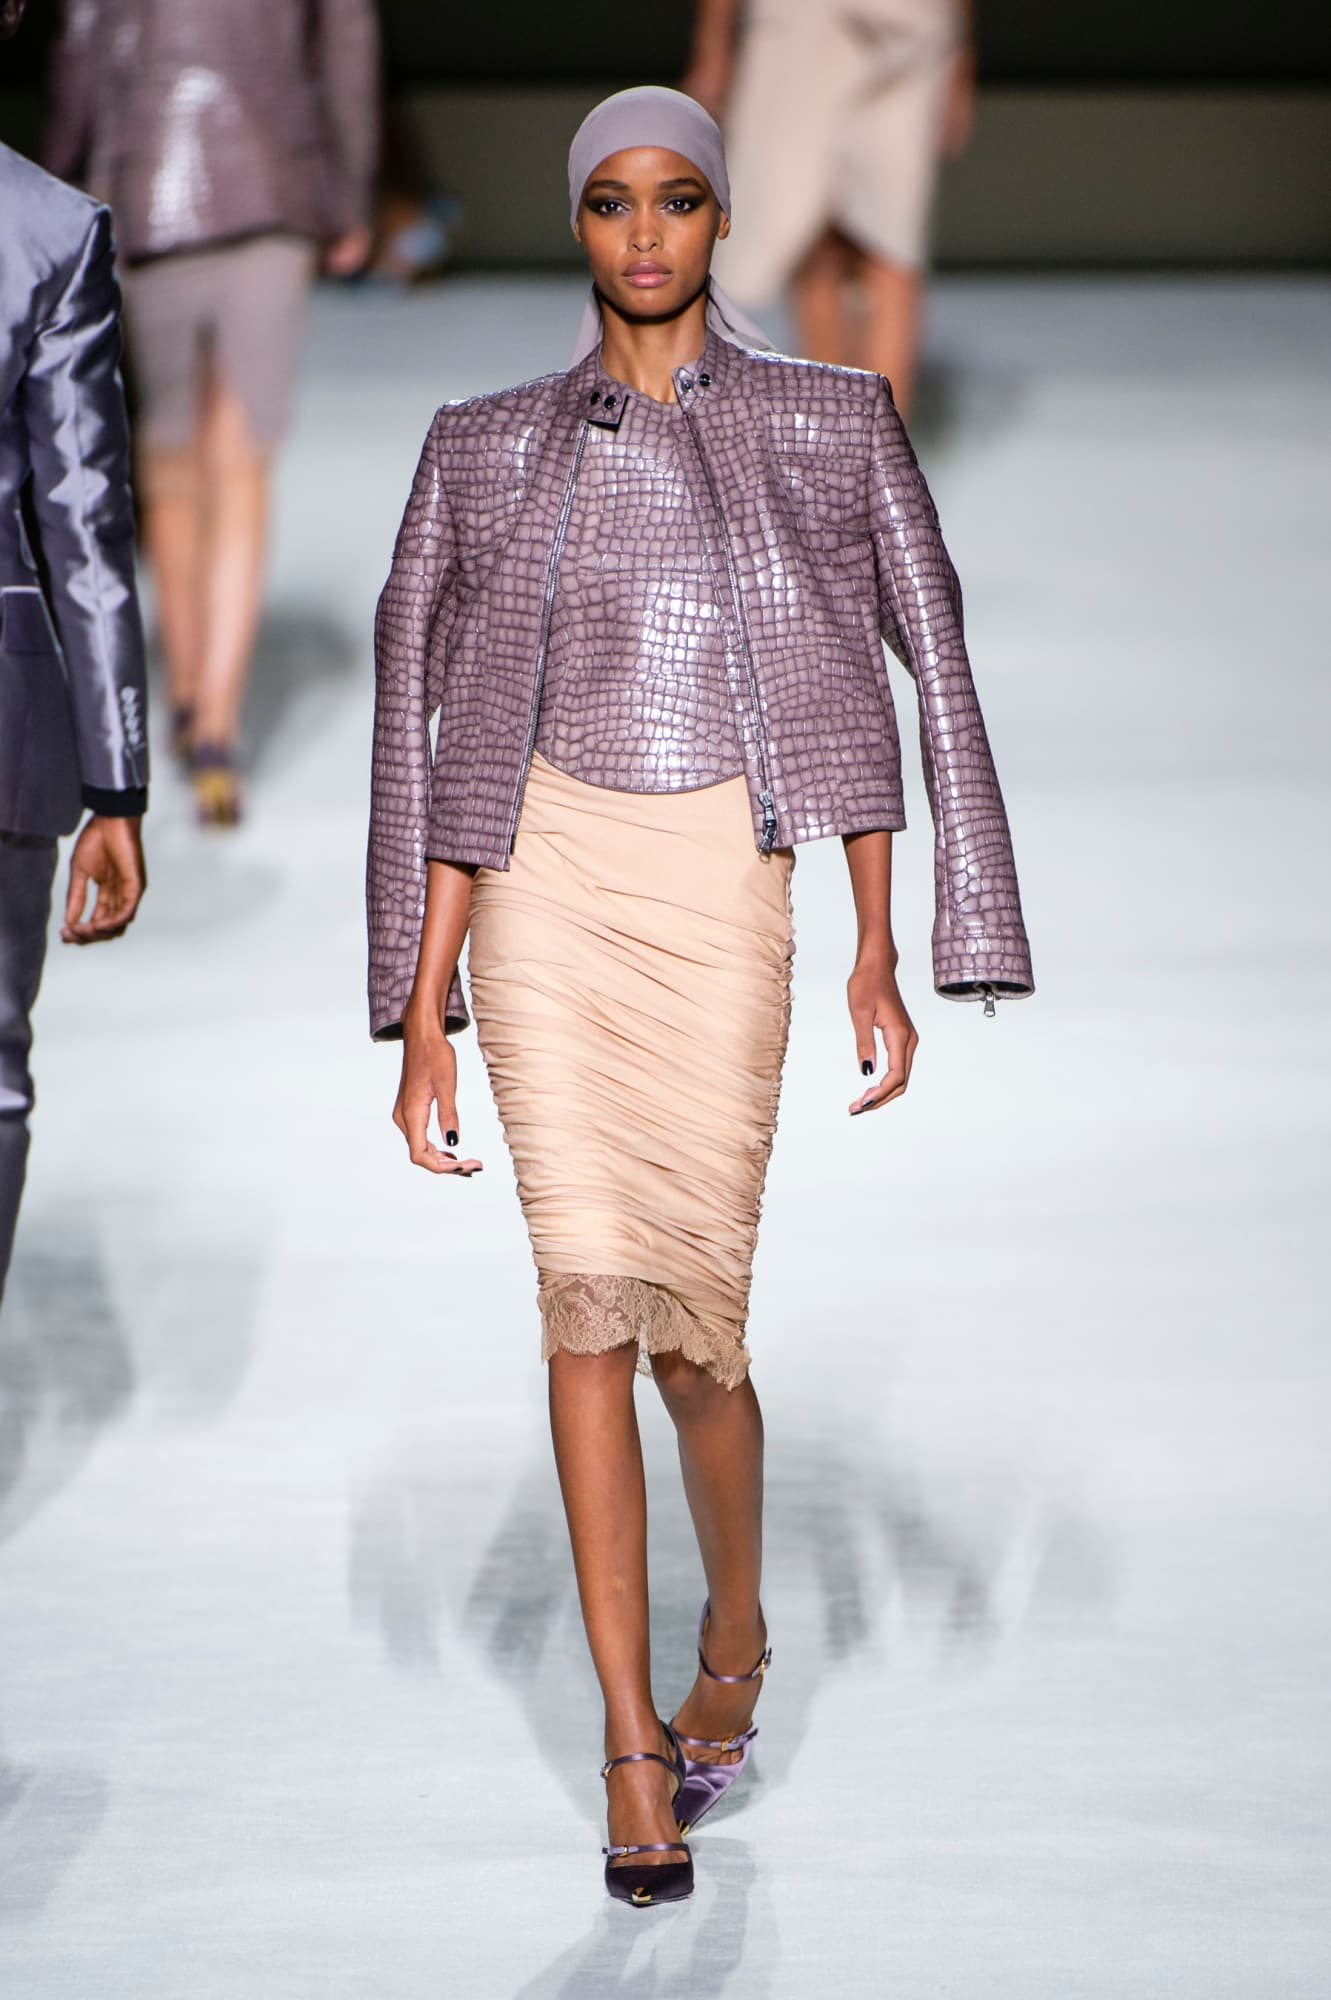 Tom Ford spring 2019 collection, leather, women's lilac animal skin leather top and jacket with blush skirt